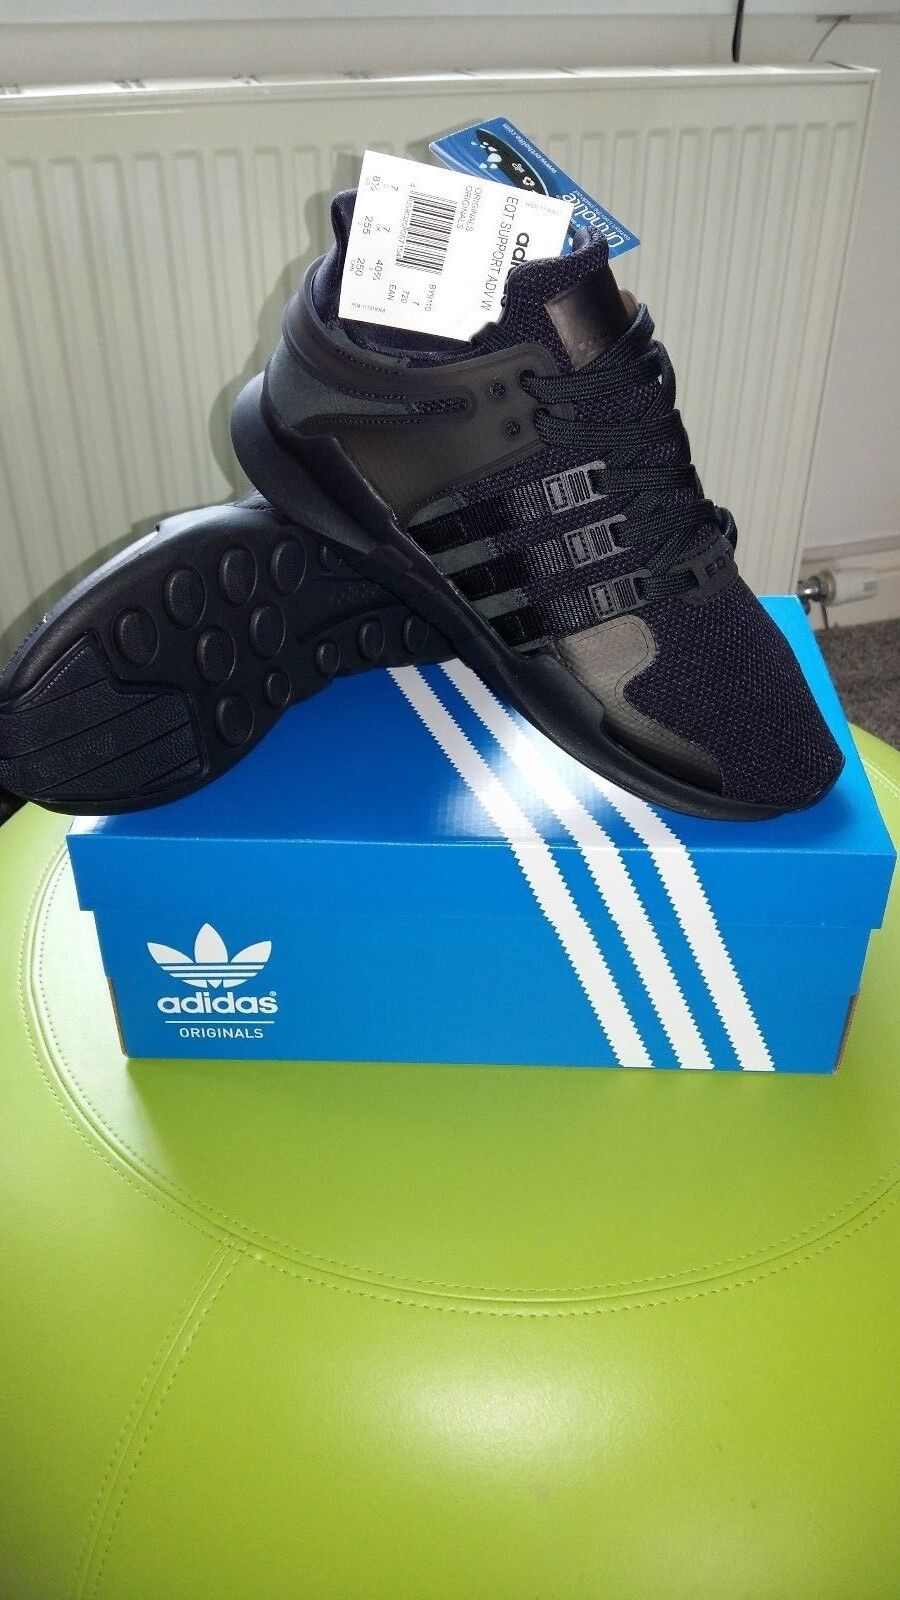 Adidas uk EQT Support ADV... unisex trainers. Größe 7 uk Adidas  eur 40 2/3 2249e6